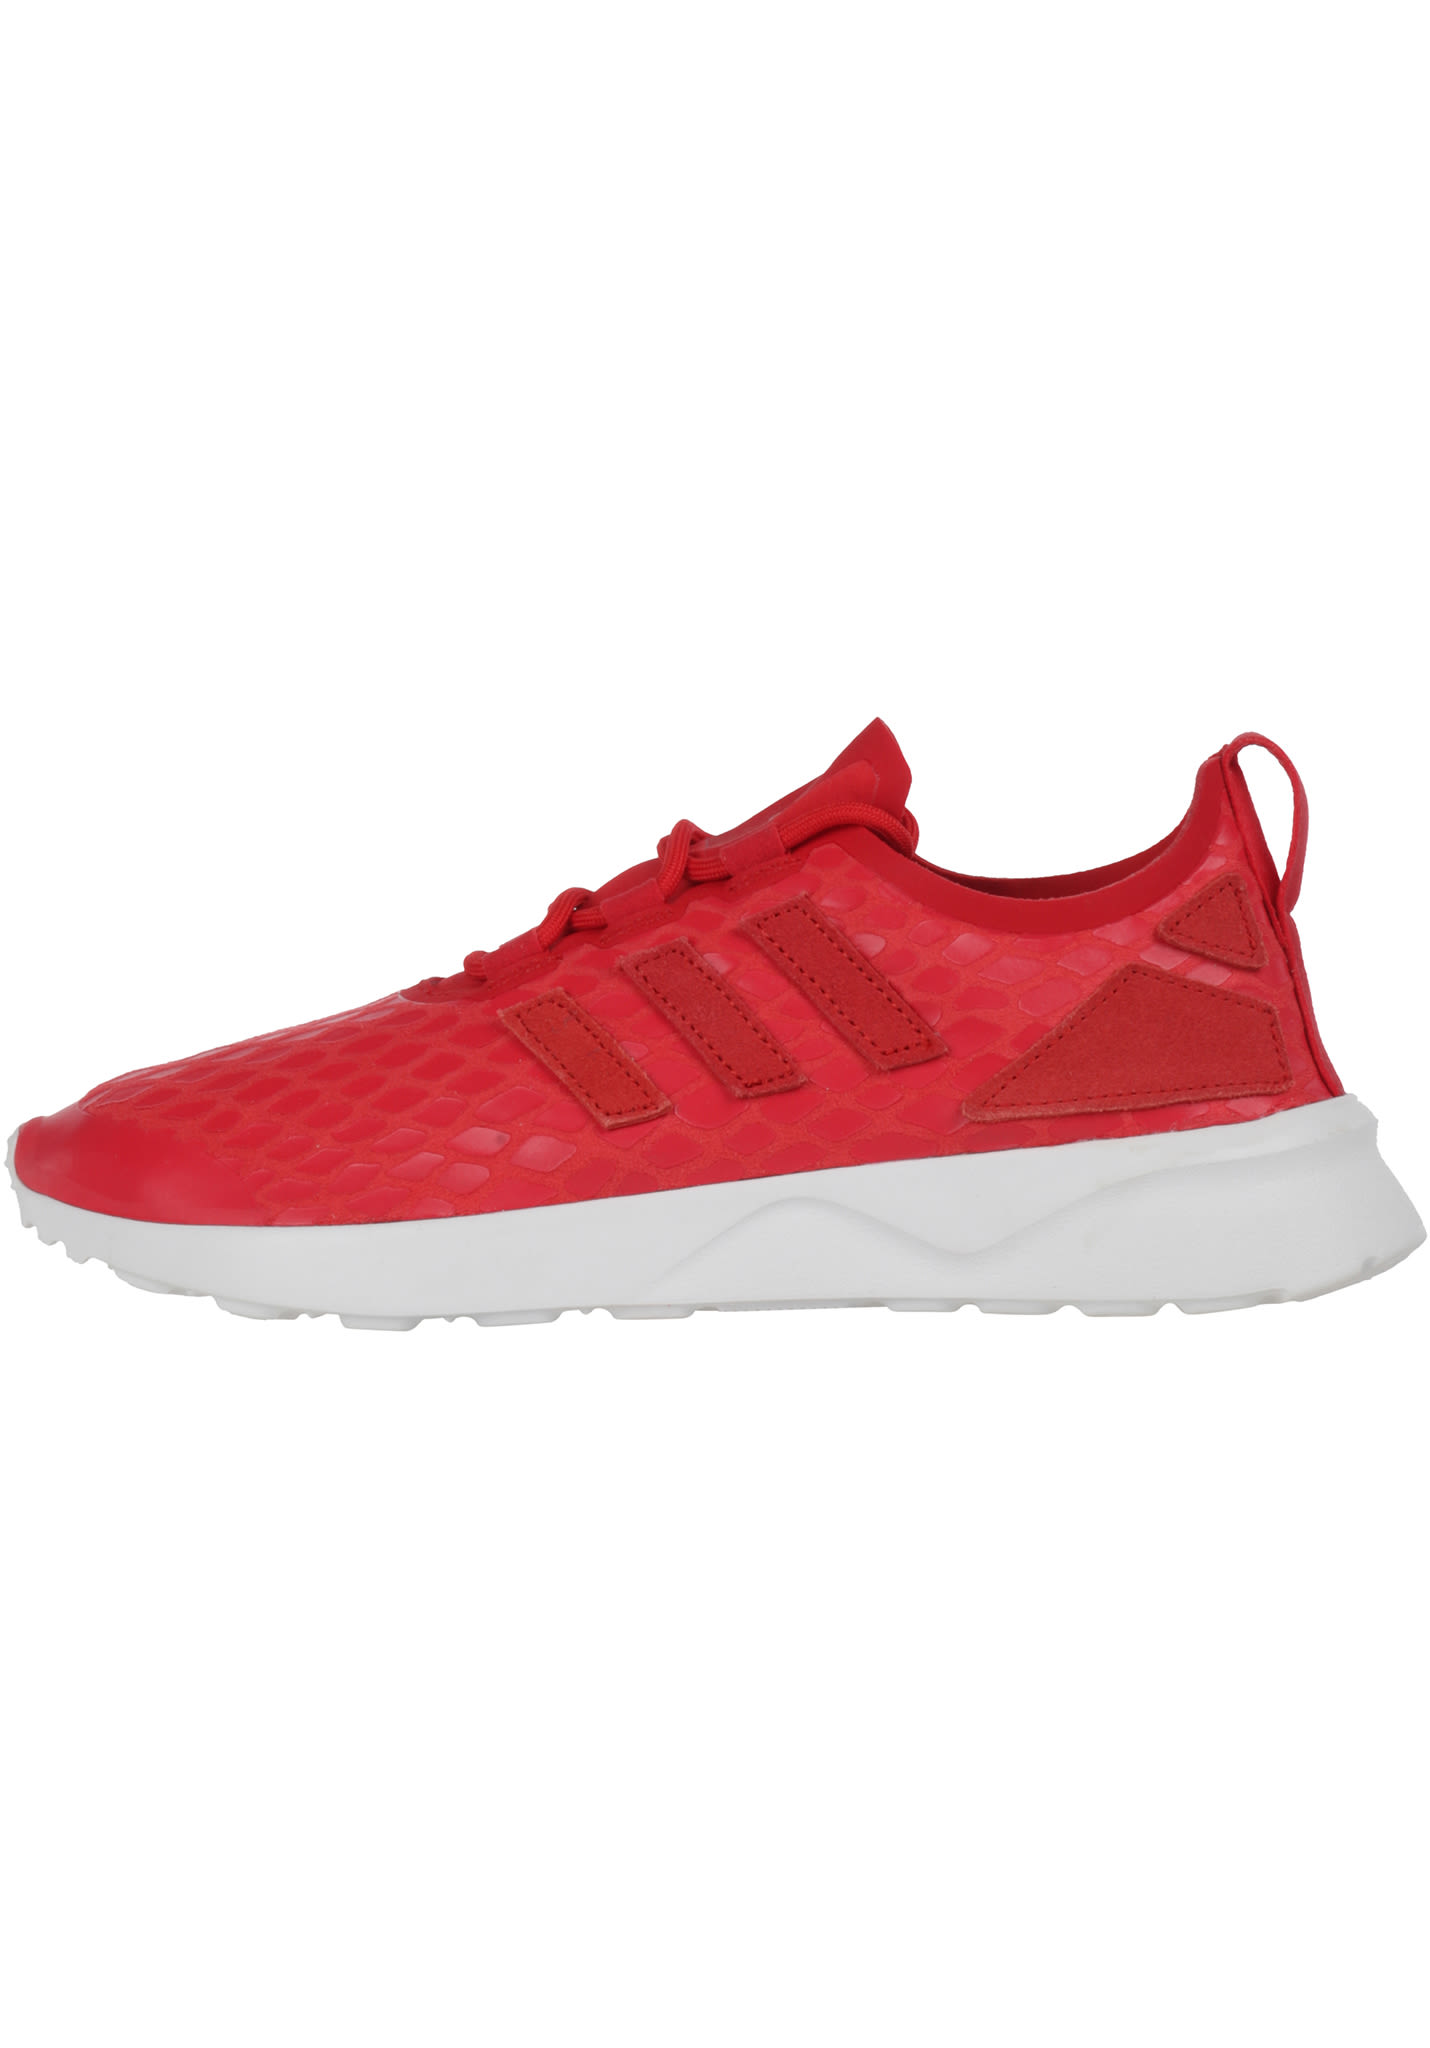 45a313c16ebe5 ADIDAS ORIGINALS ZX Flux ADV Verve - Sneakers for Women - Red - Planet  Sports